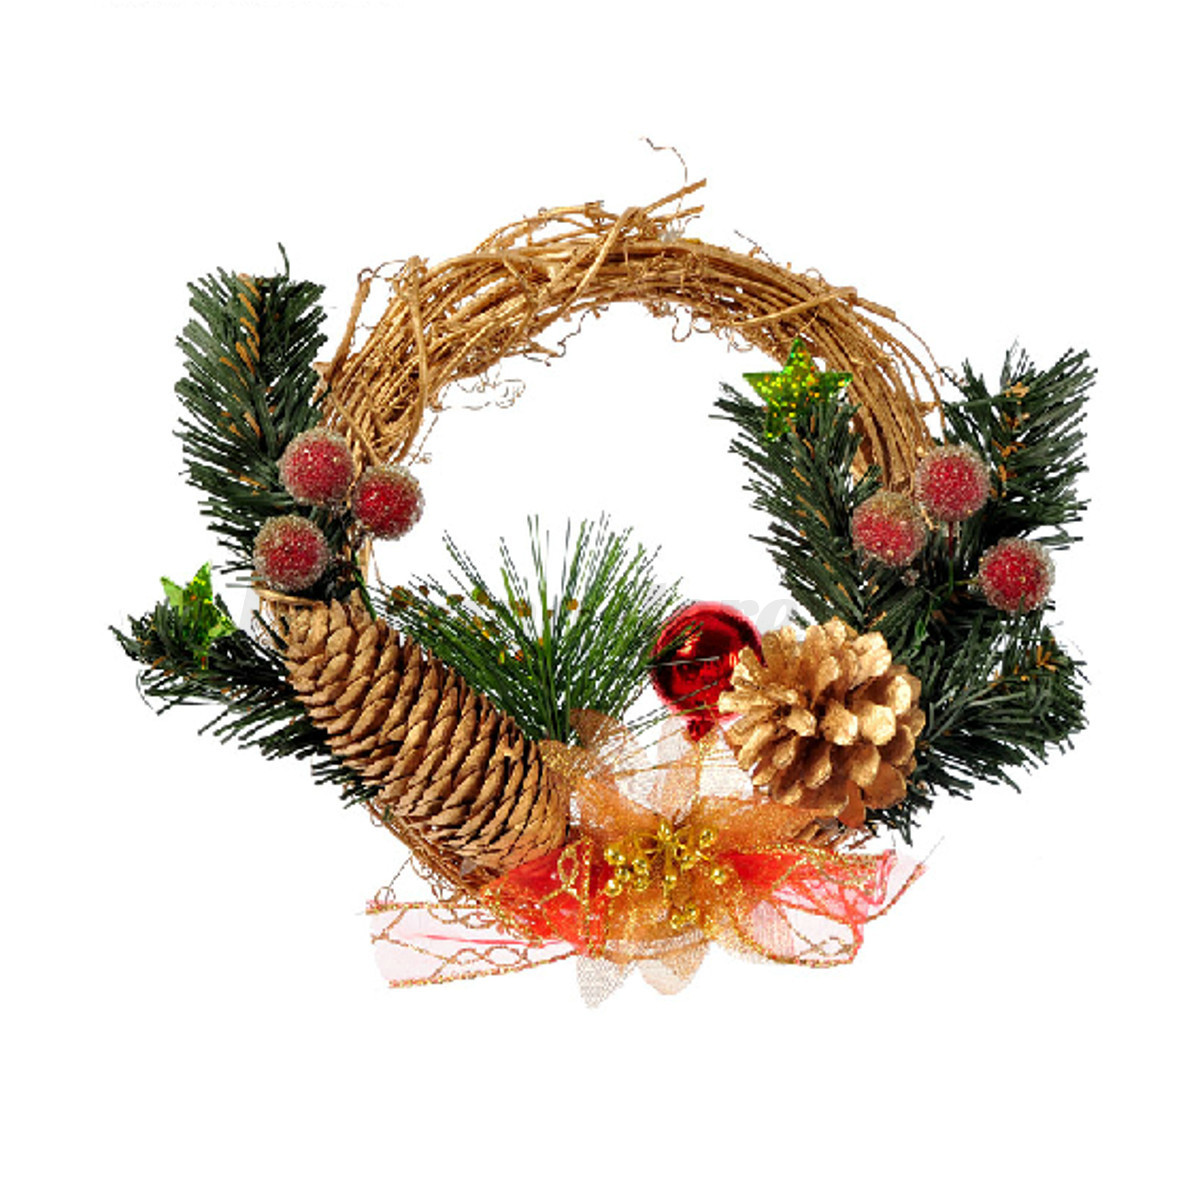 Merry Christmas Party Poinsettia Pine Wreath Door Wall Home Garland Xmas Decor